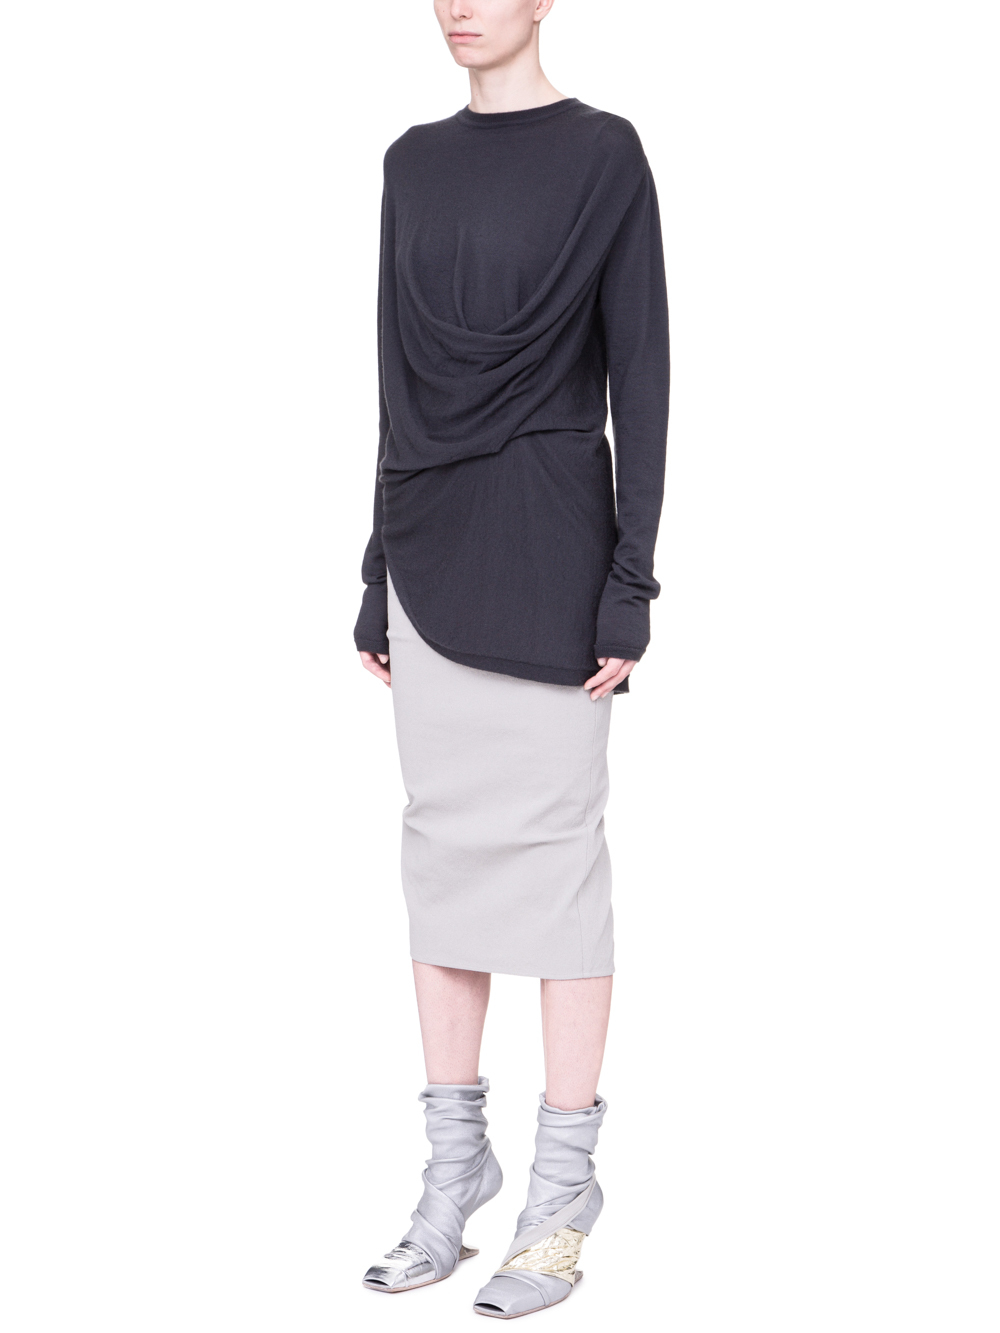 RICK OWENS SS19 BABEL DRAPED KNIT SWEATER IN BLUEJAY BLUE CASHMERE